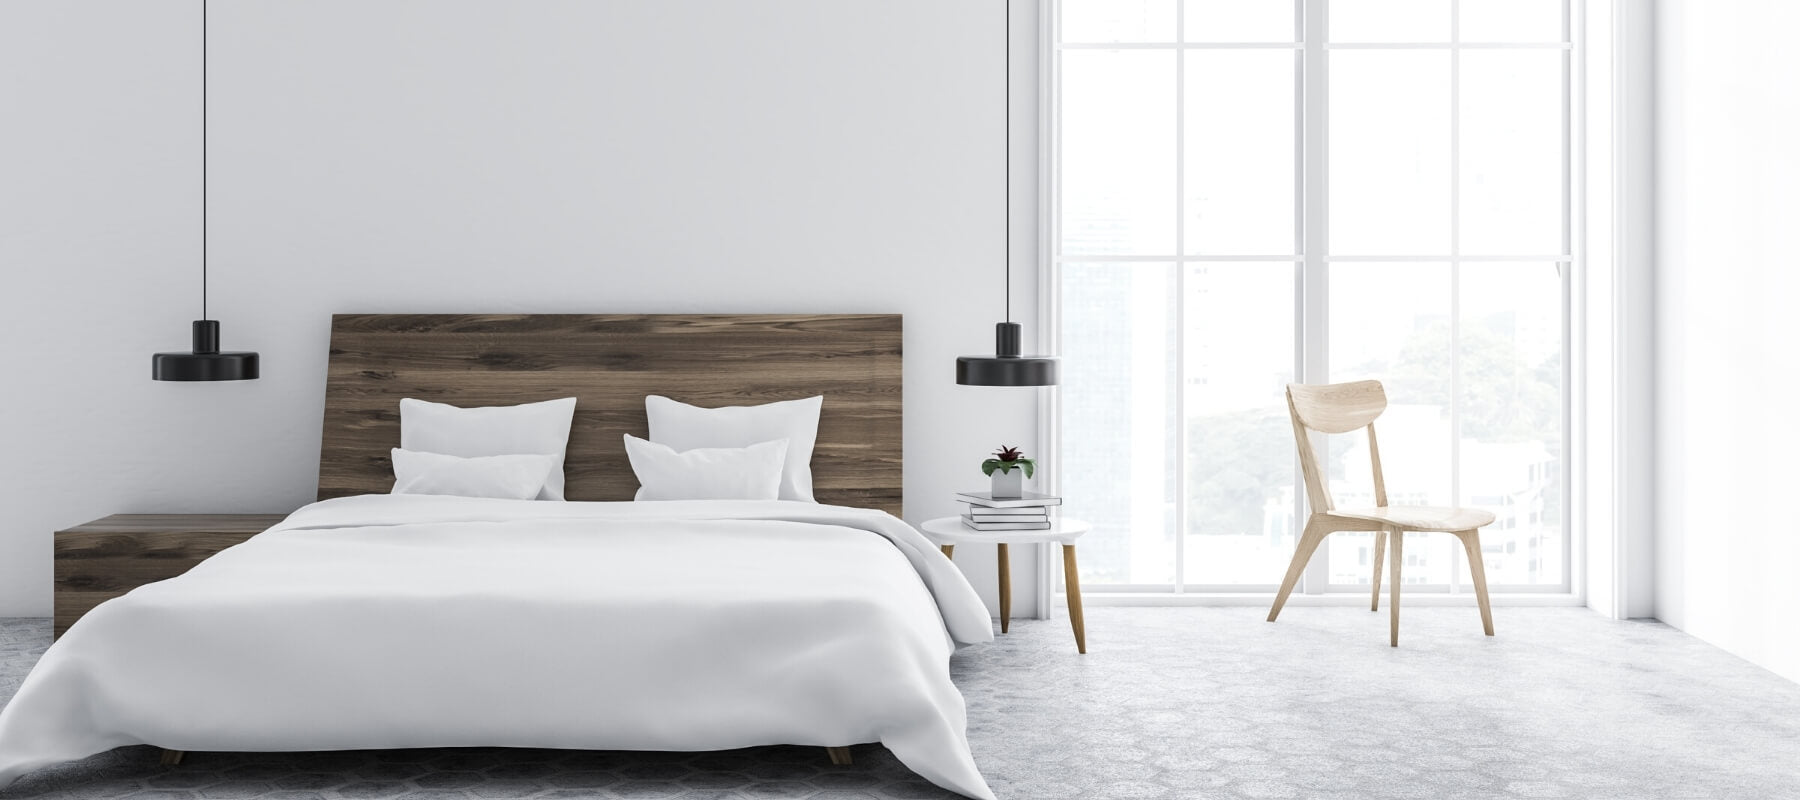 A large modern bedroom including a king size bed